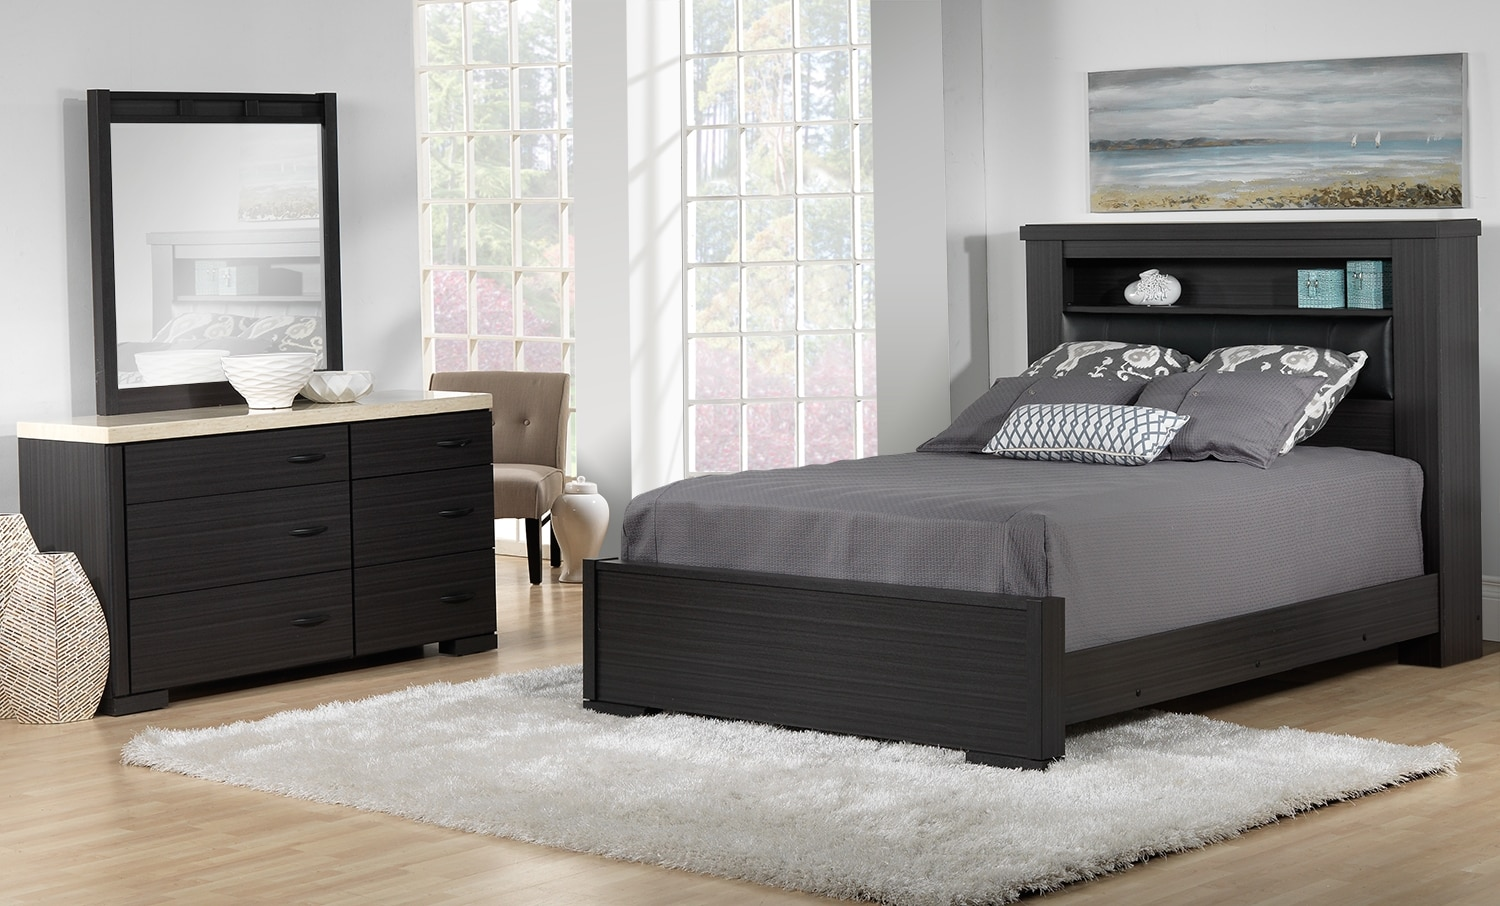 Bedroom Furniture - Mojave 5-Piece Queen Bedroom Set - Charcoal & White